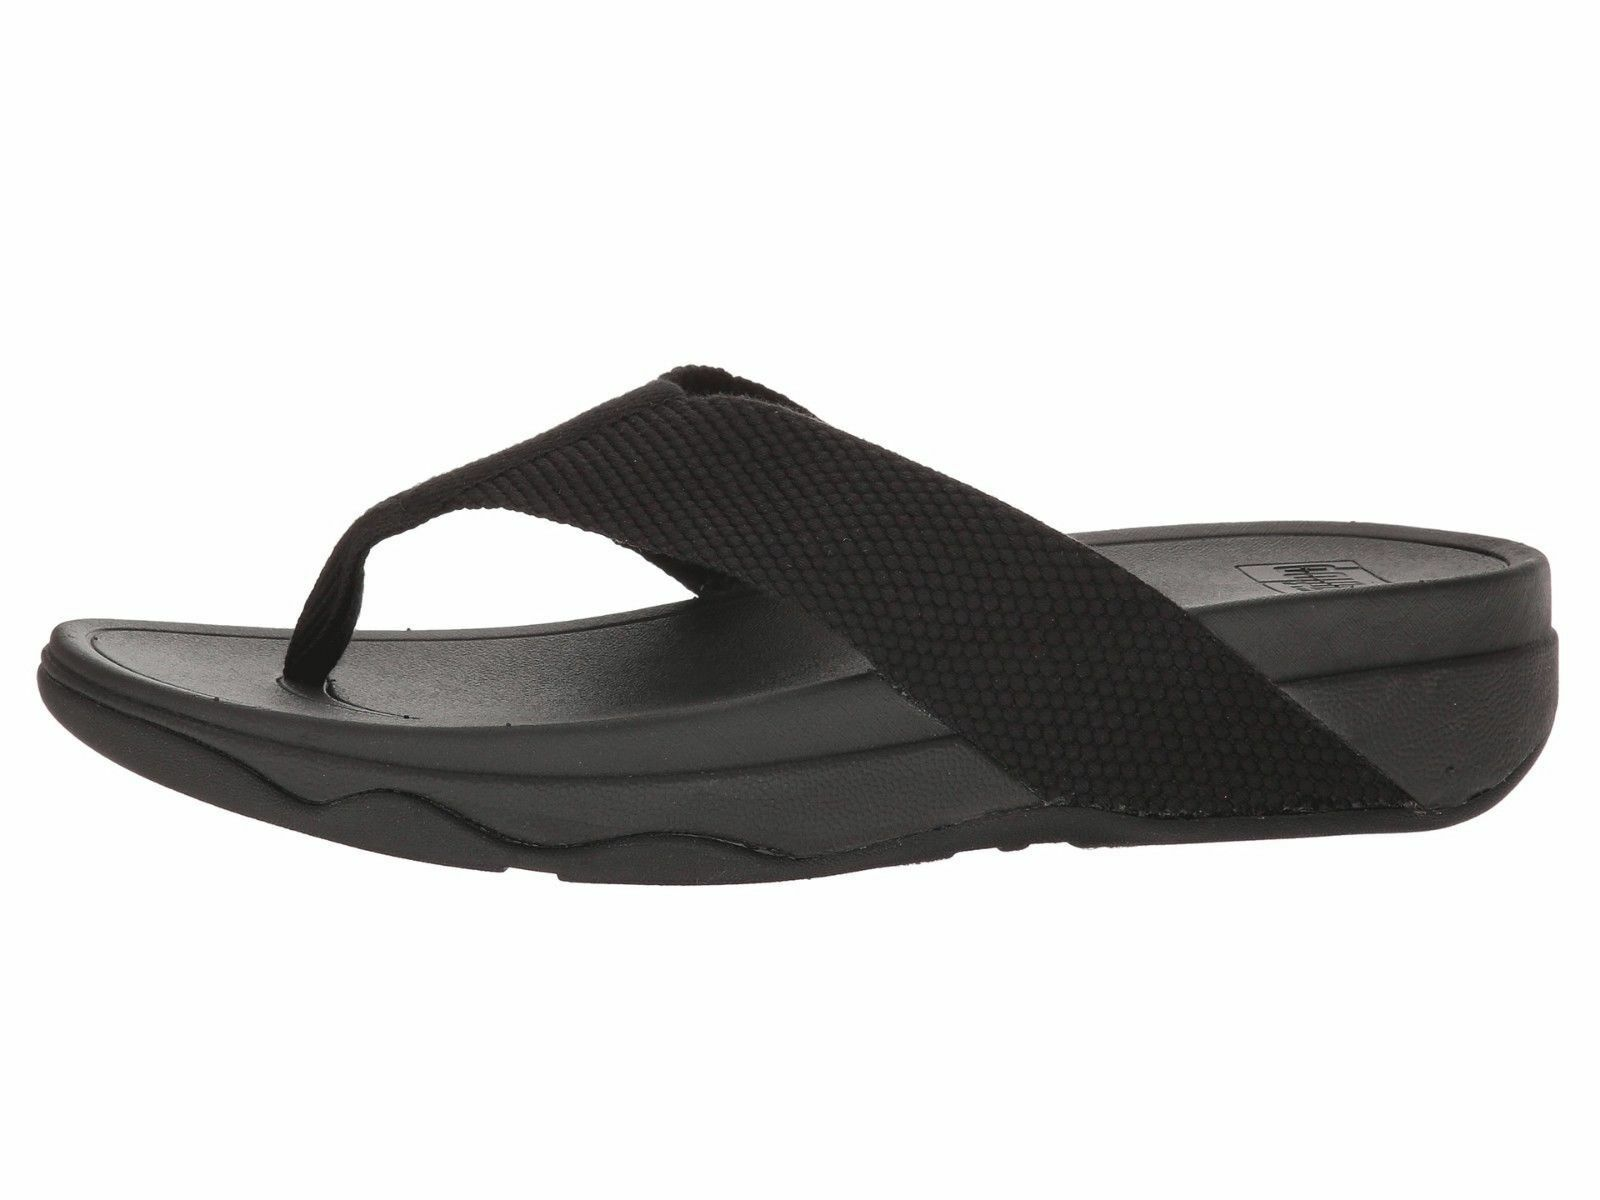 Fitflop Surfa Black Women's T-Strap Wedge Sandal H84-001